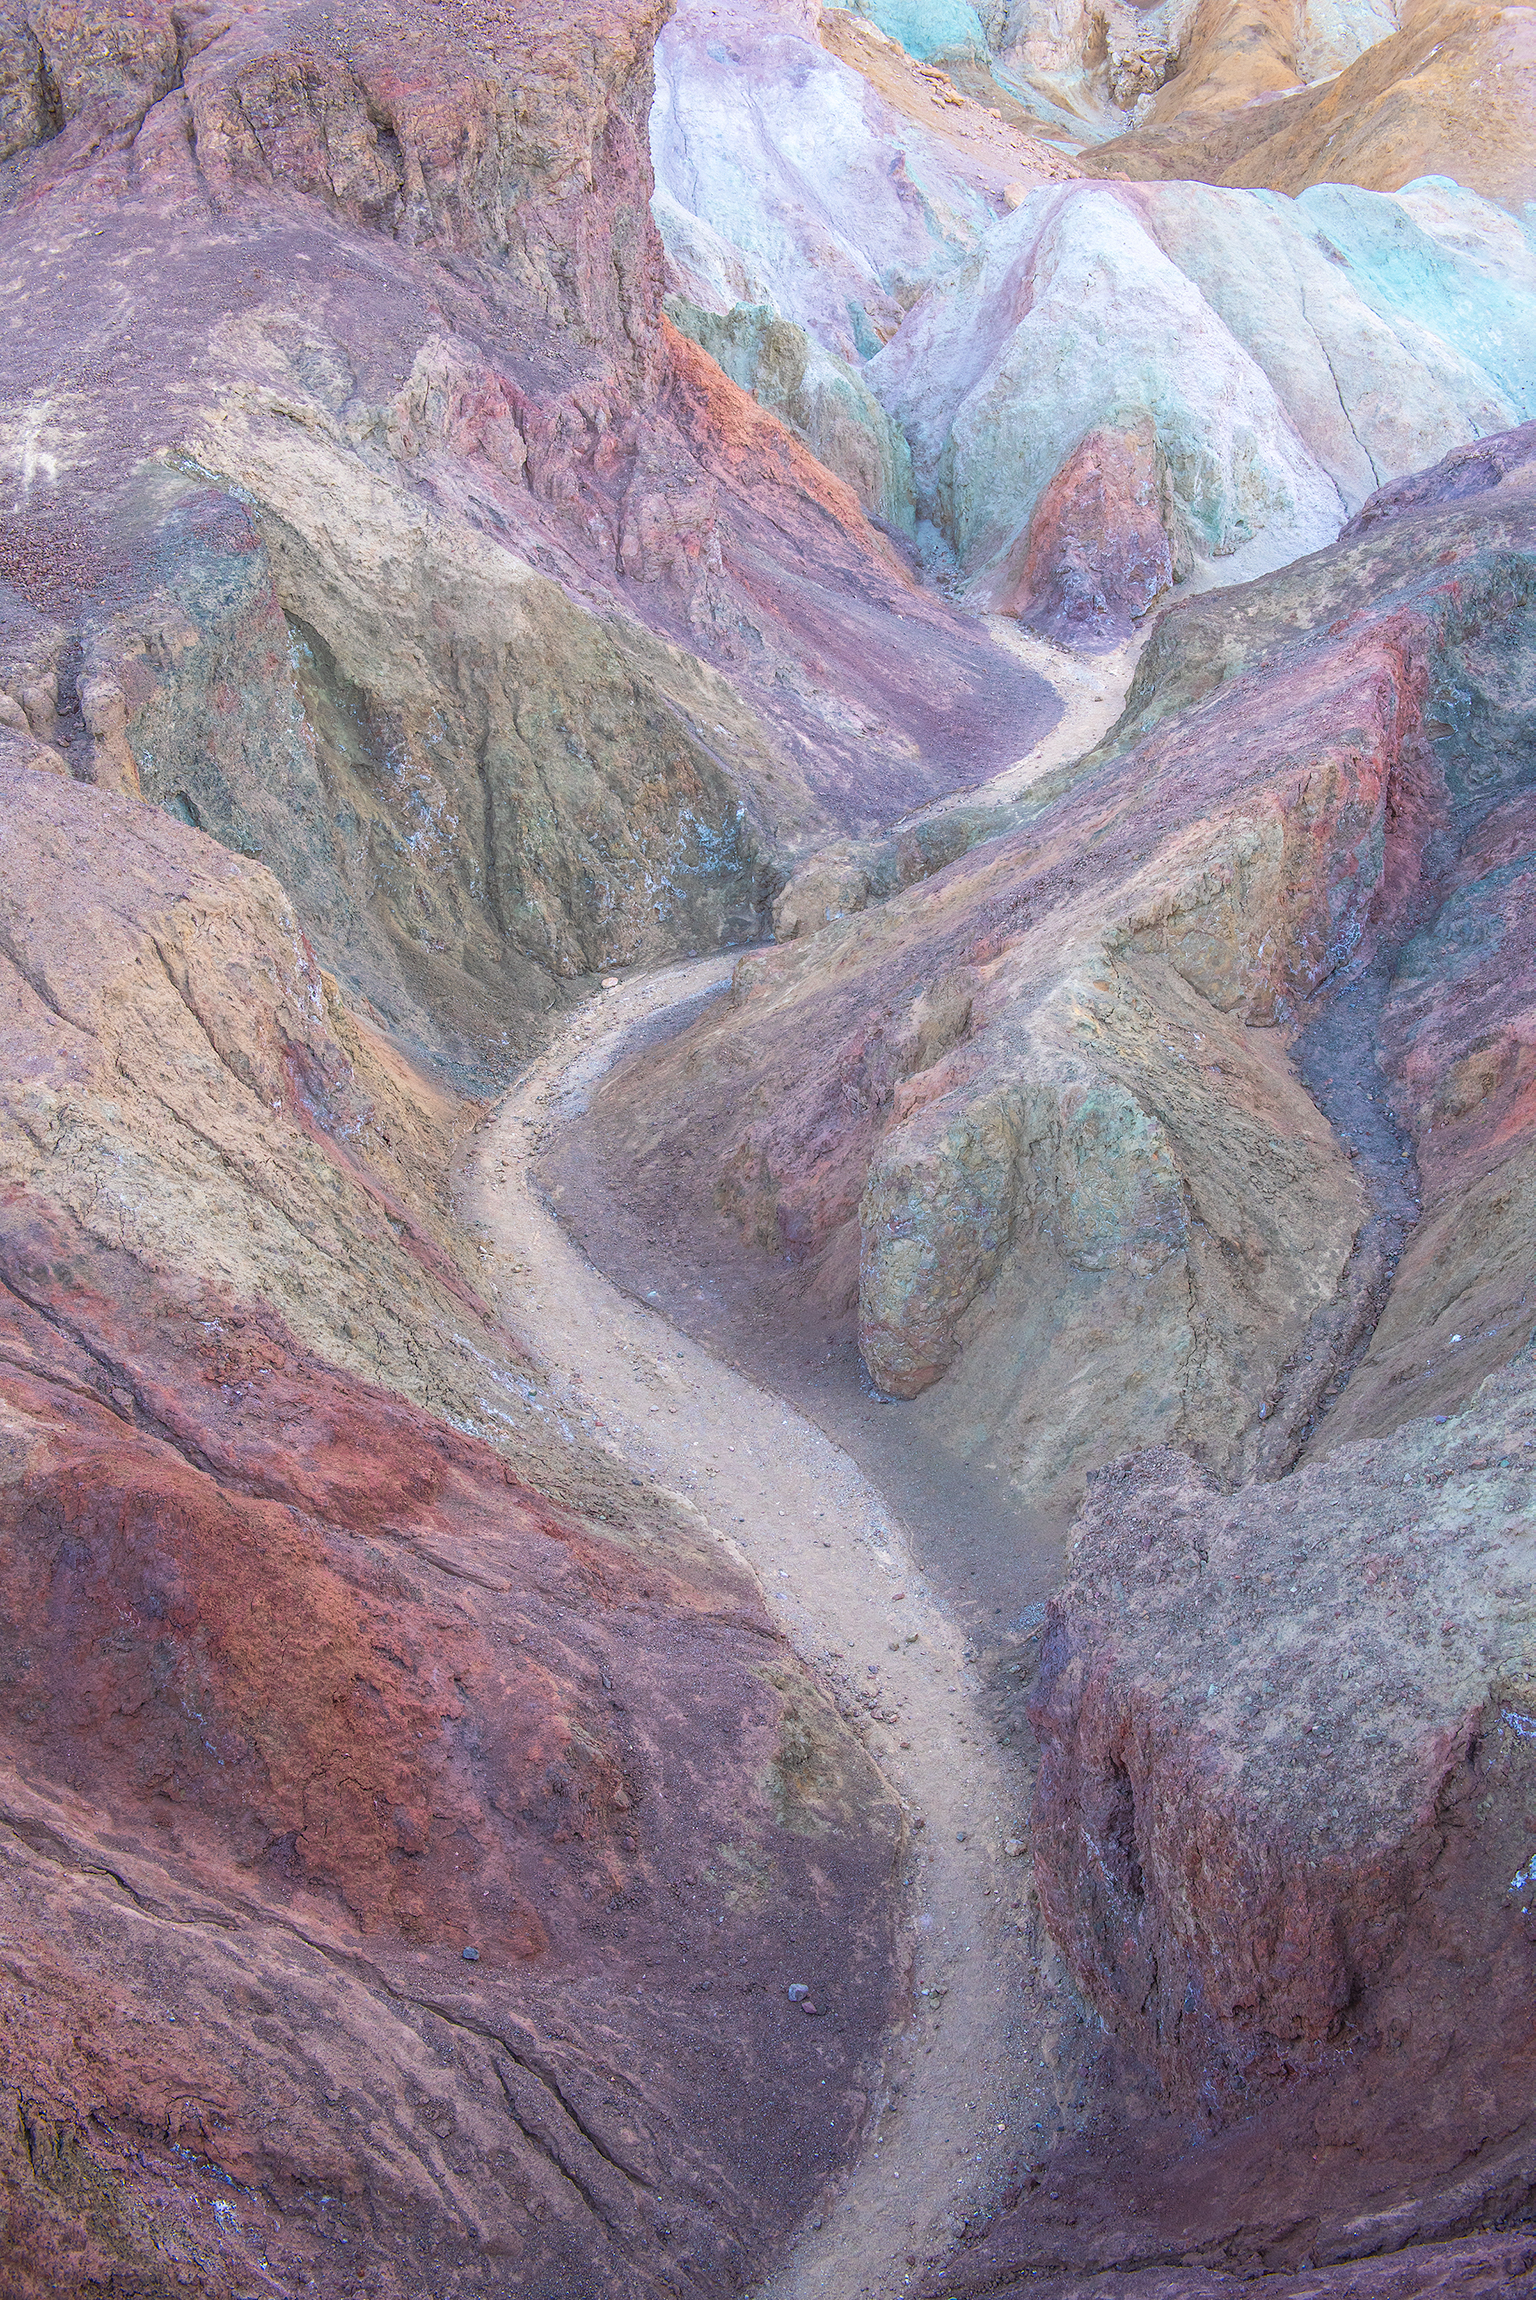 deathvalleyartist2.jpg